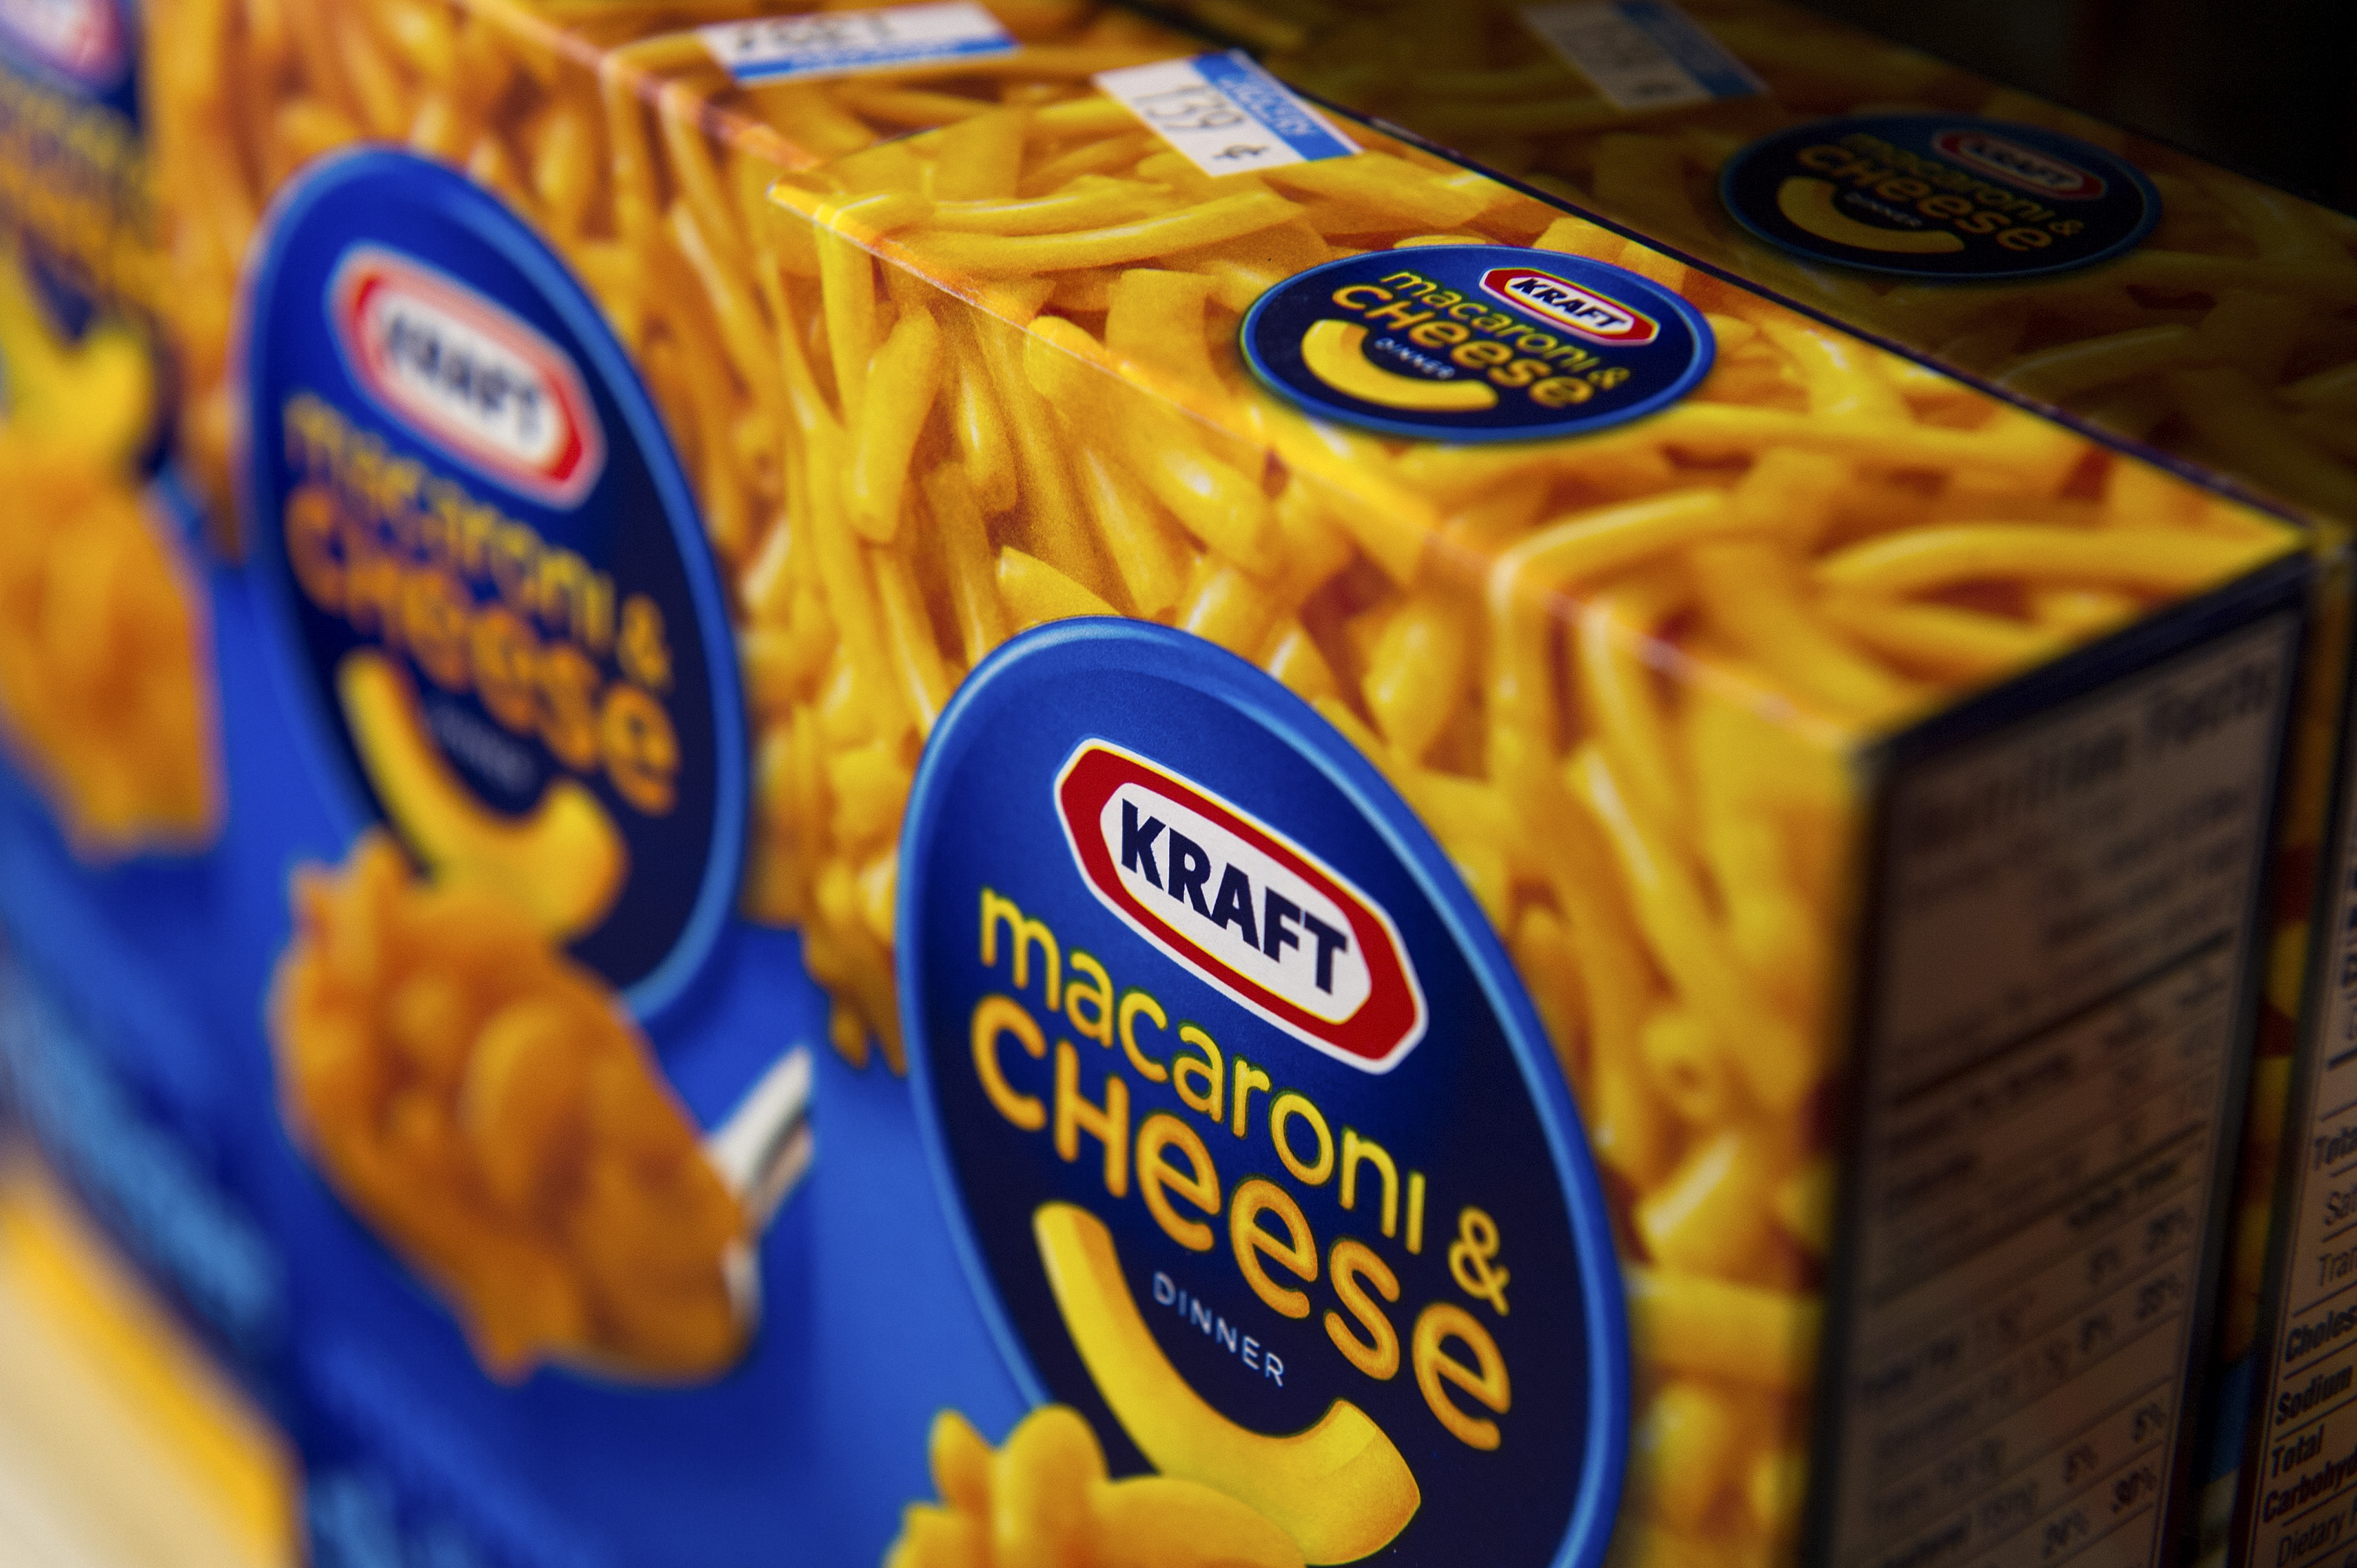 Views Of Kraft Foods Products At A Supermarket Ahead Of Earns